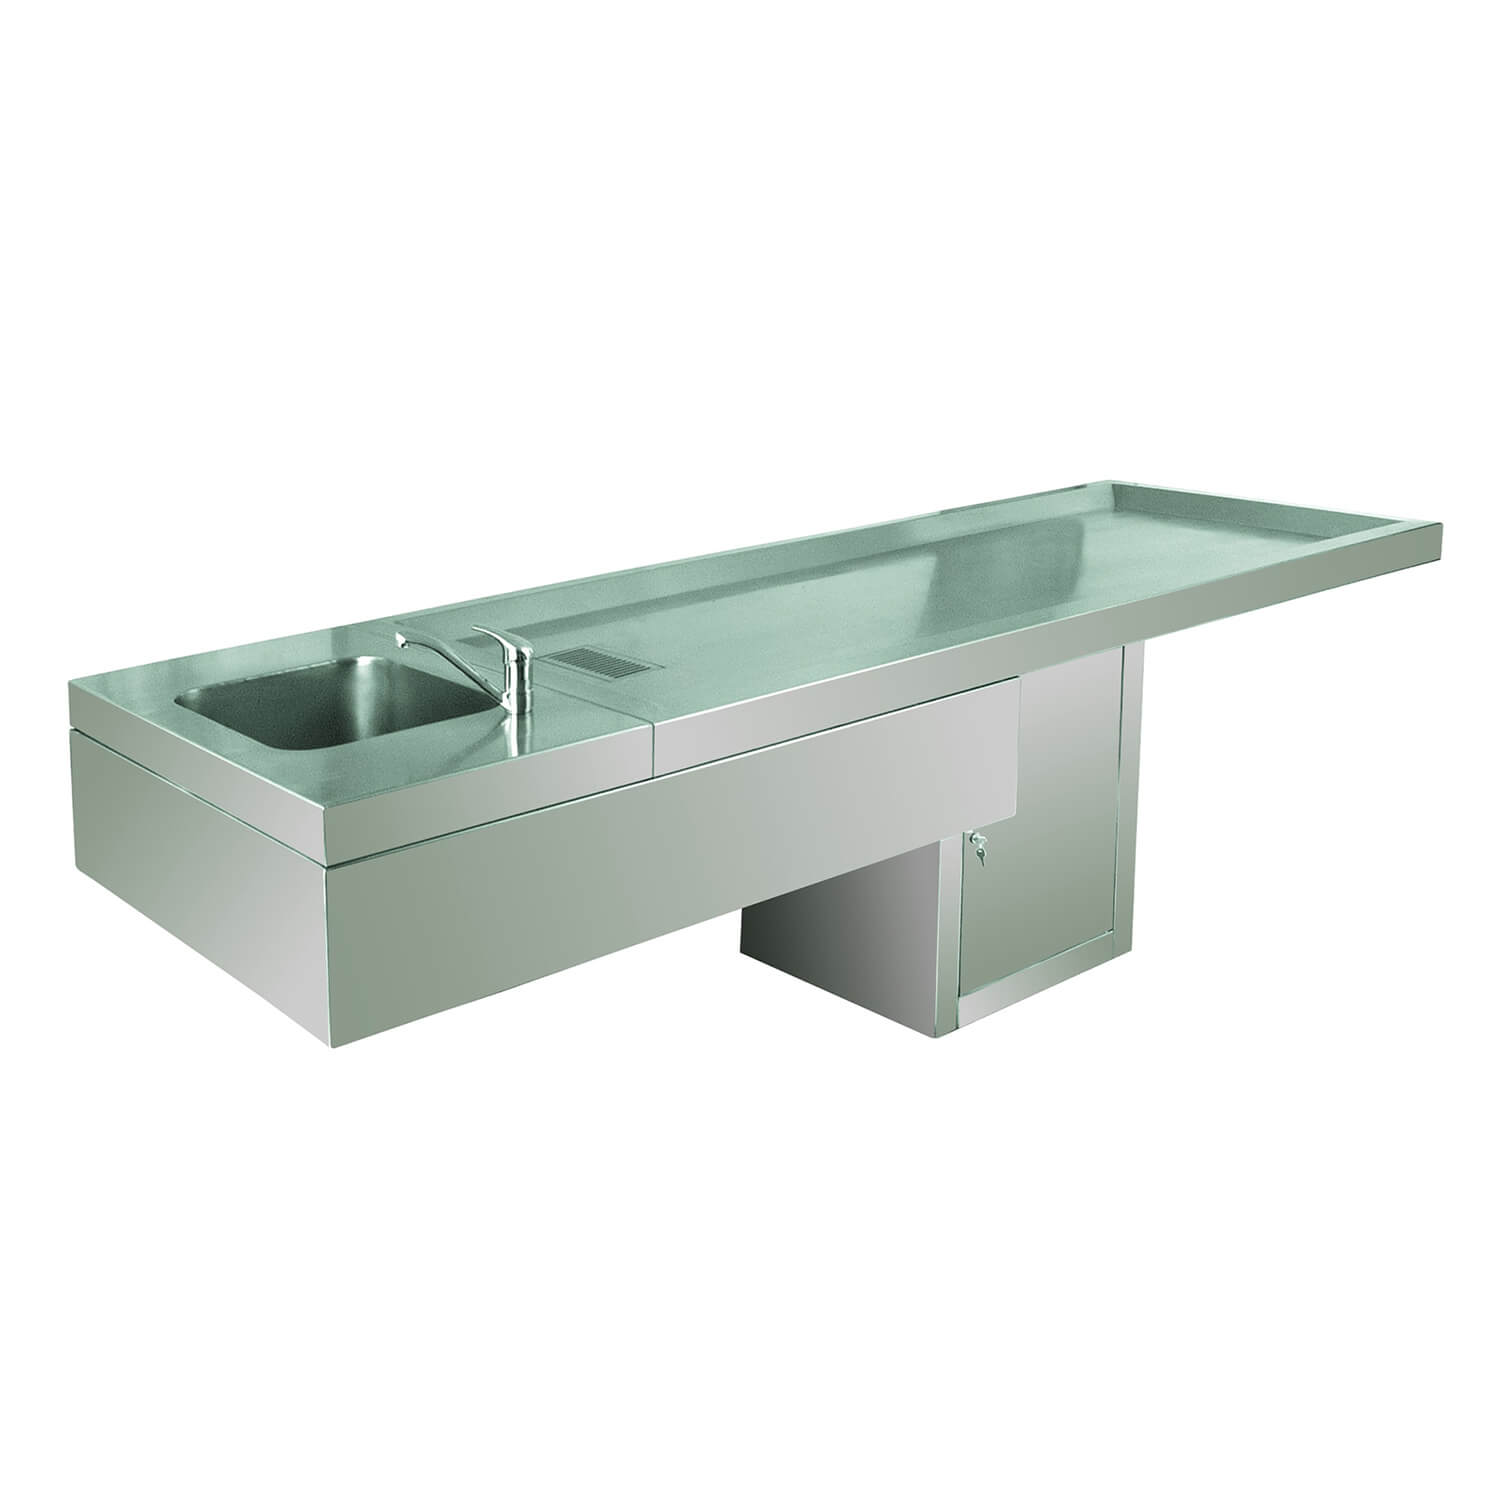 Autospy Table with Sink